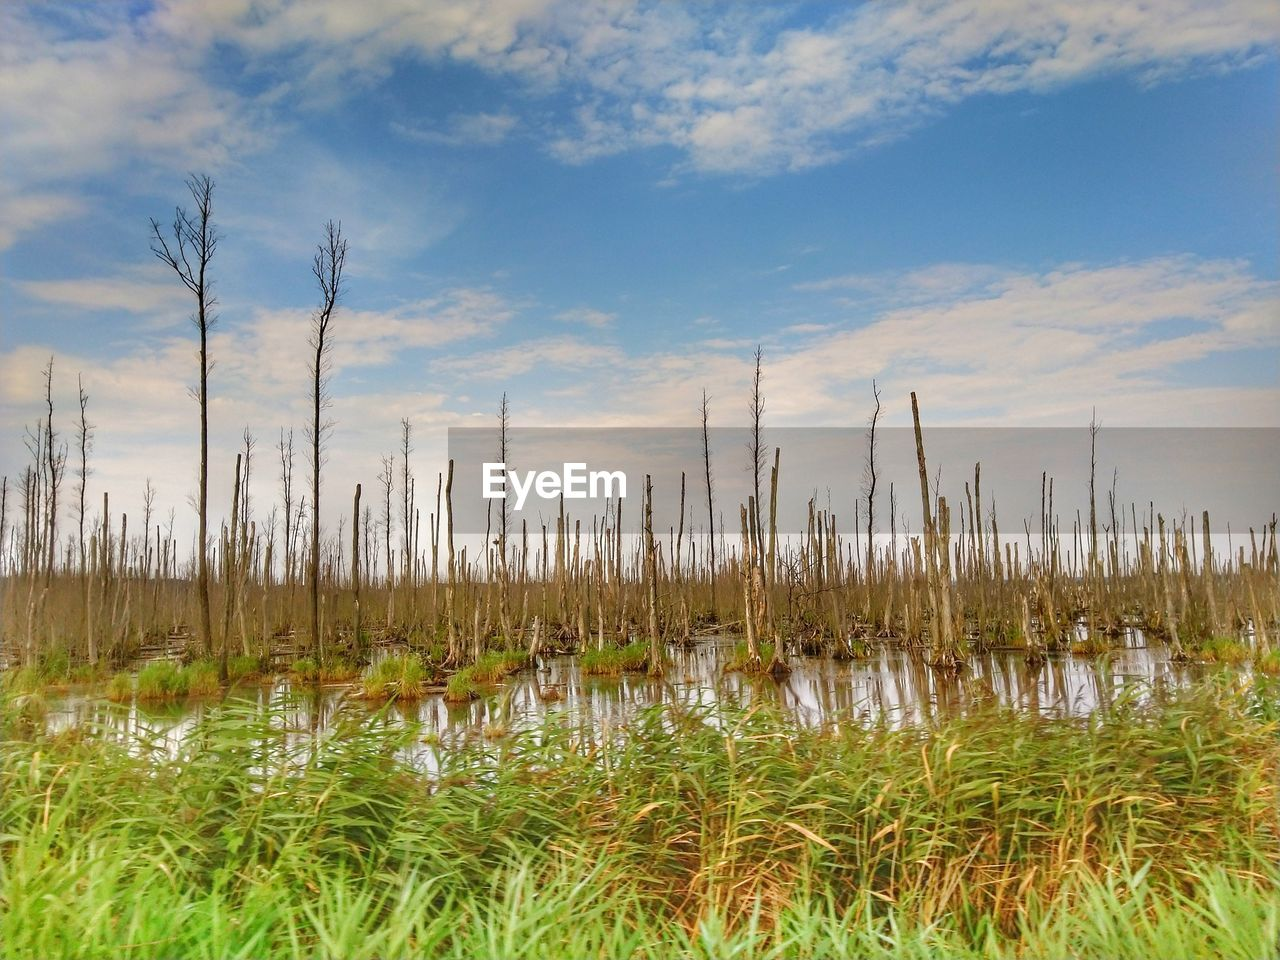 plant, cloud - sky, sky, beauty in nature, water, tranquility, growth, nature, grass, no people, tranquil scene, scenics - nature, day, outdoors, lake, reflection, non-urban scene, landscape, land, swamp